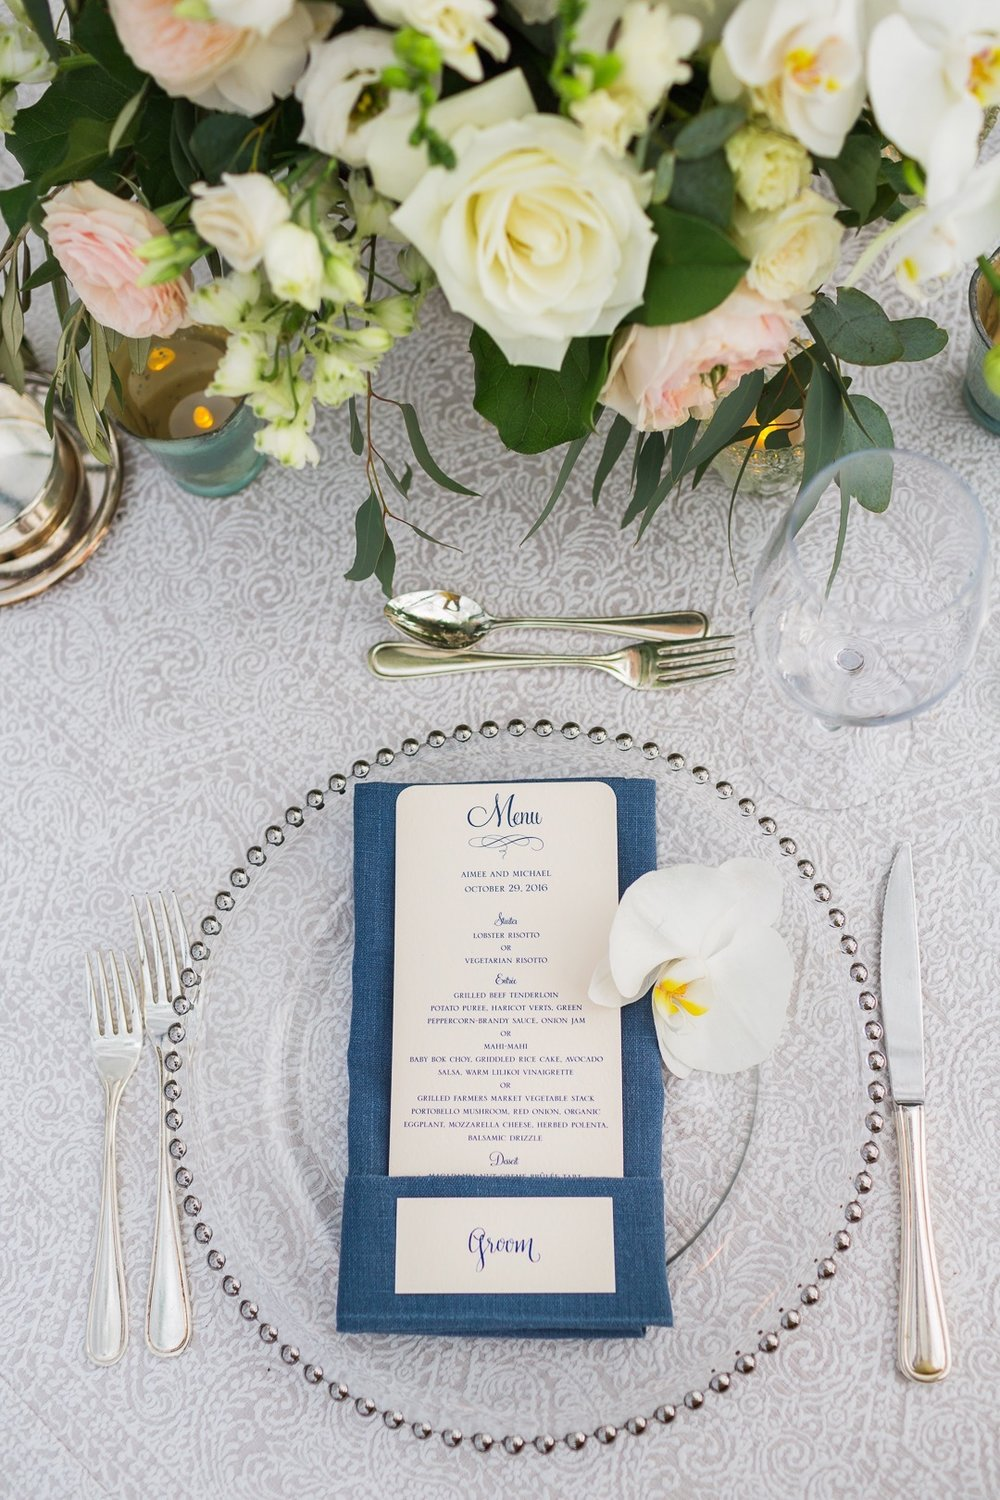 Silver Beaded Glass Chargers.  Photo:  Sea Light Studios  |  Decor  Bliss In Bloom